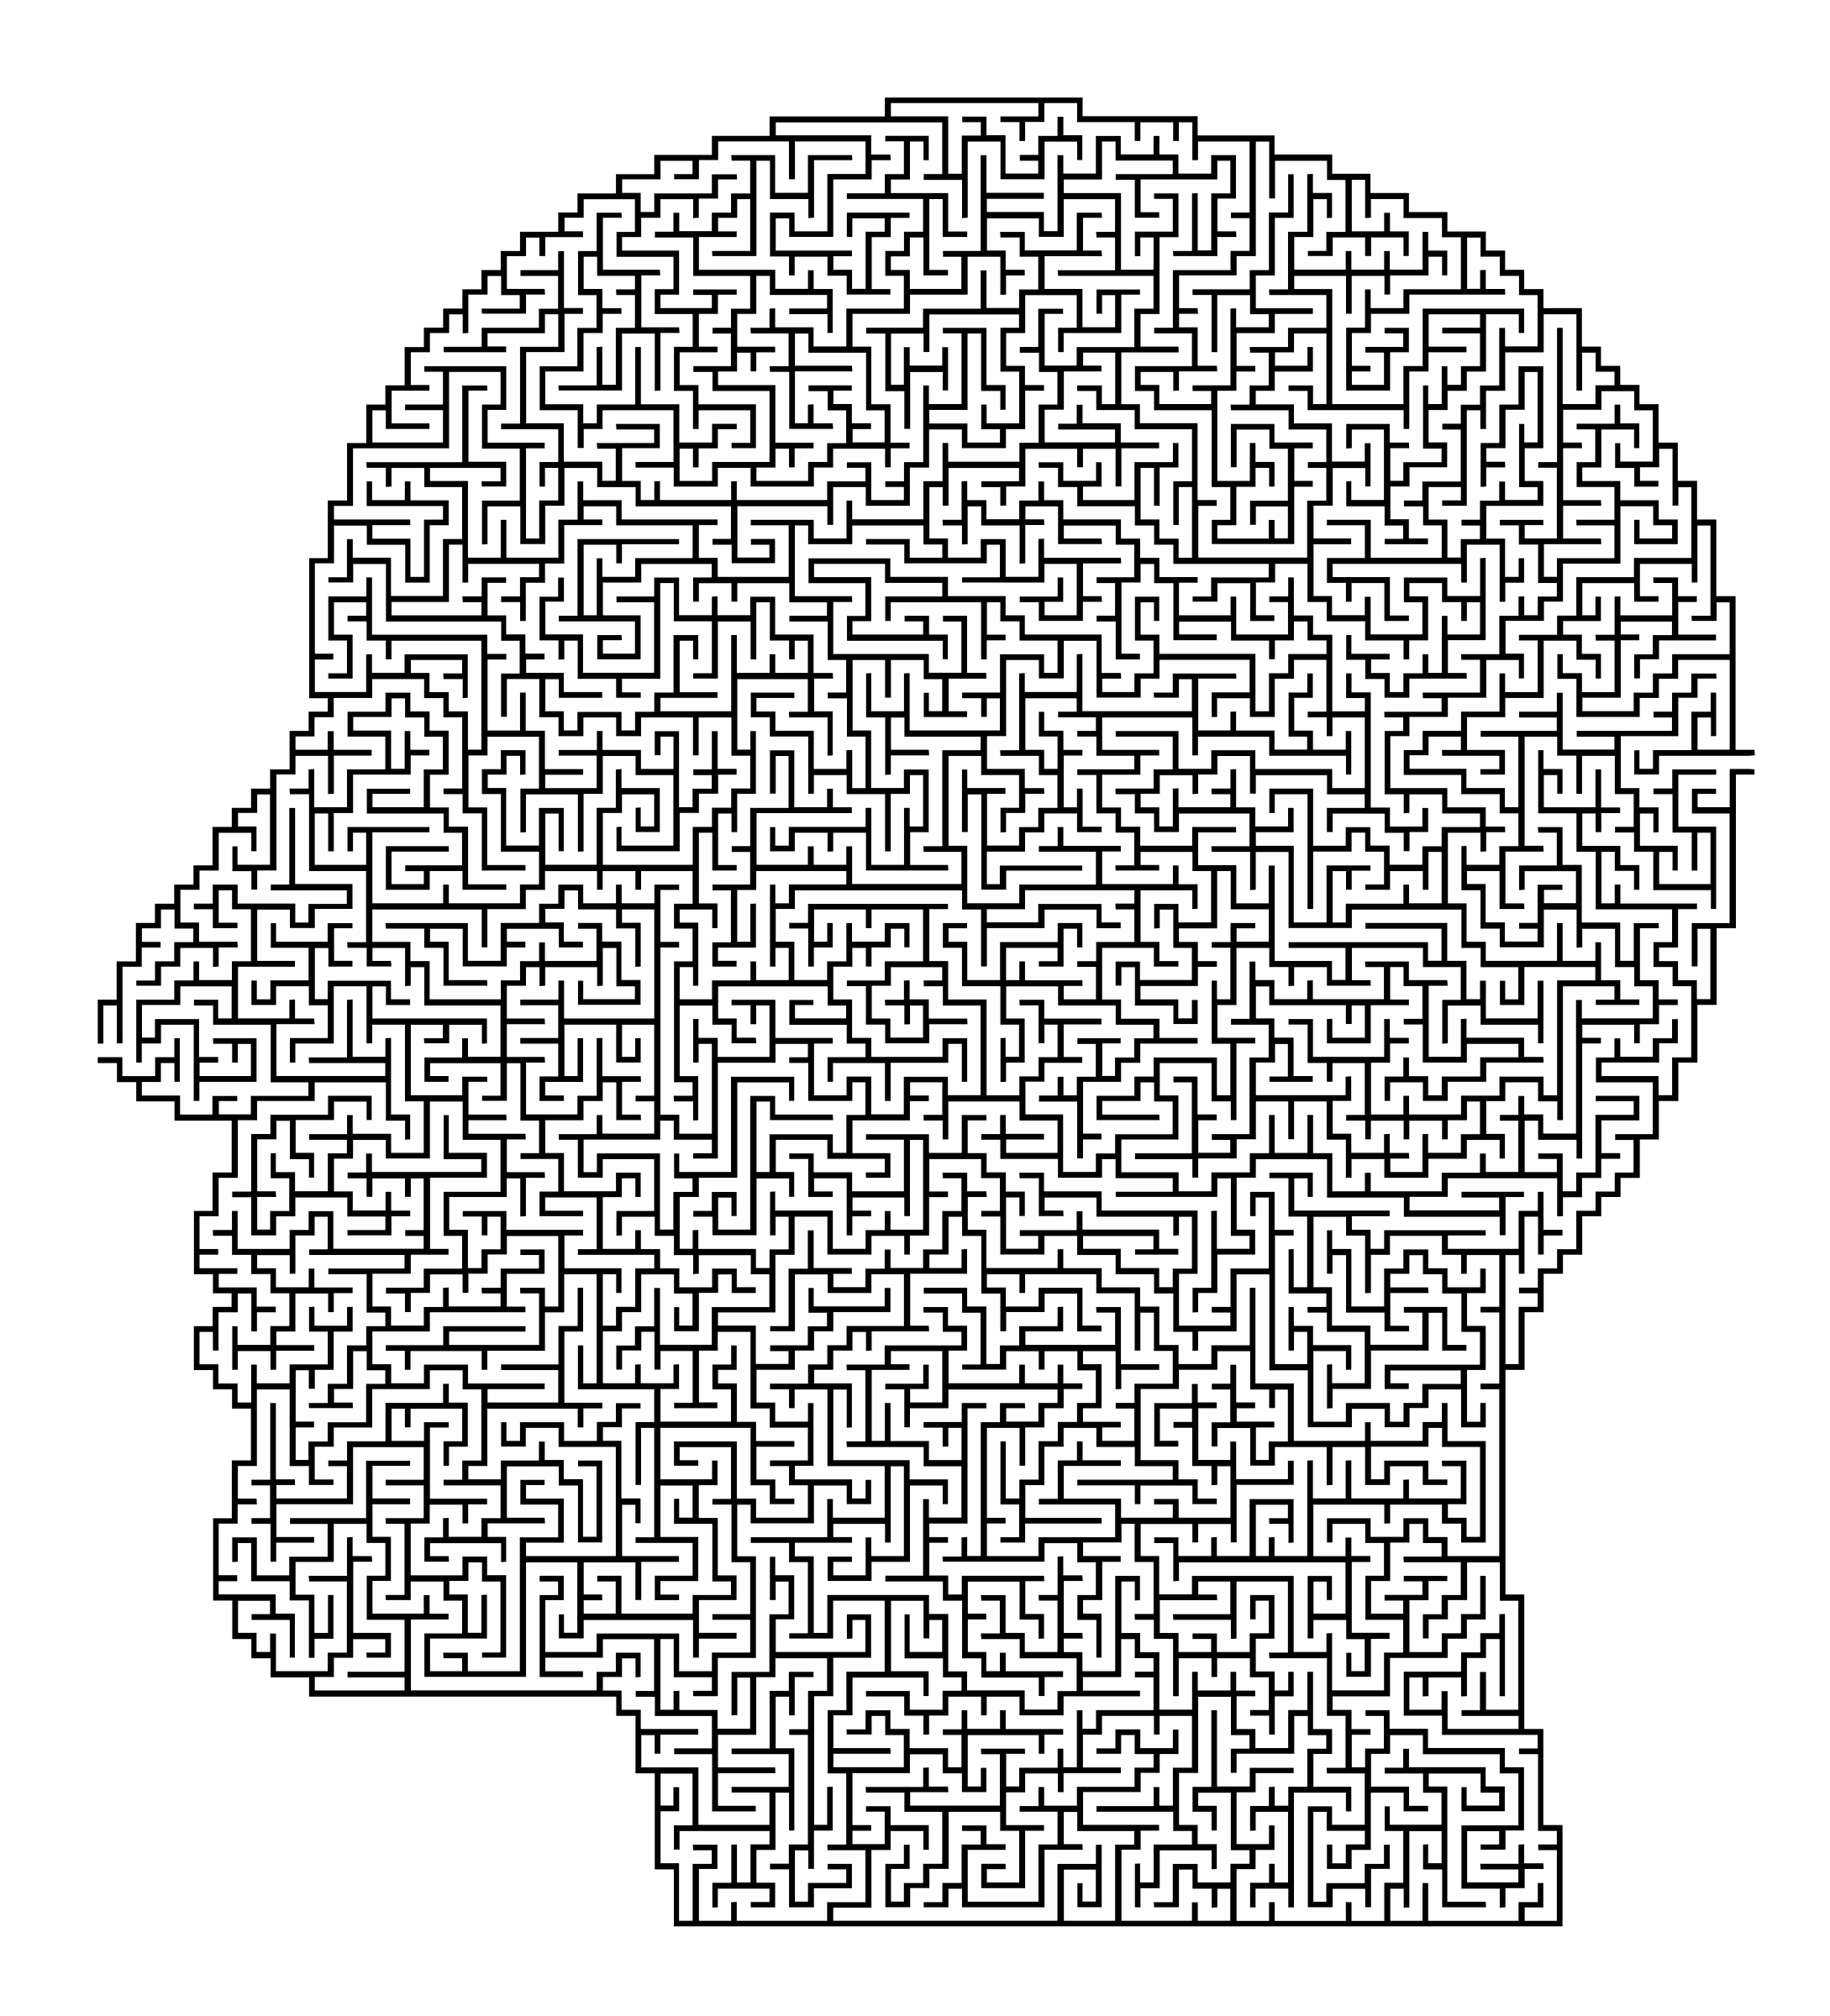 Man Head Maze by GDJ